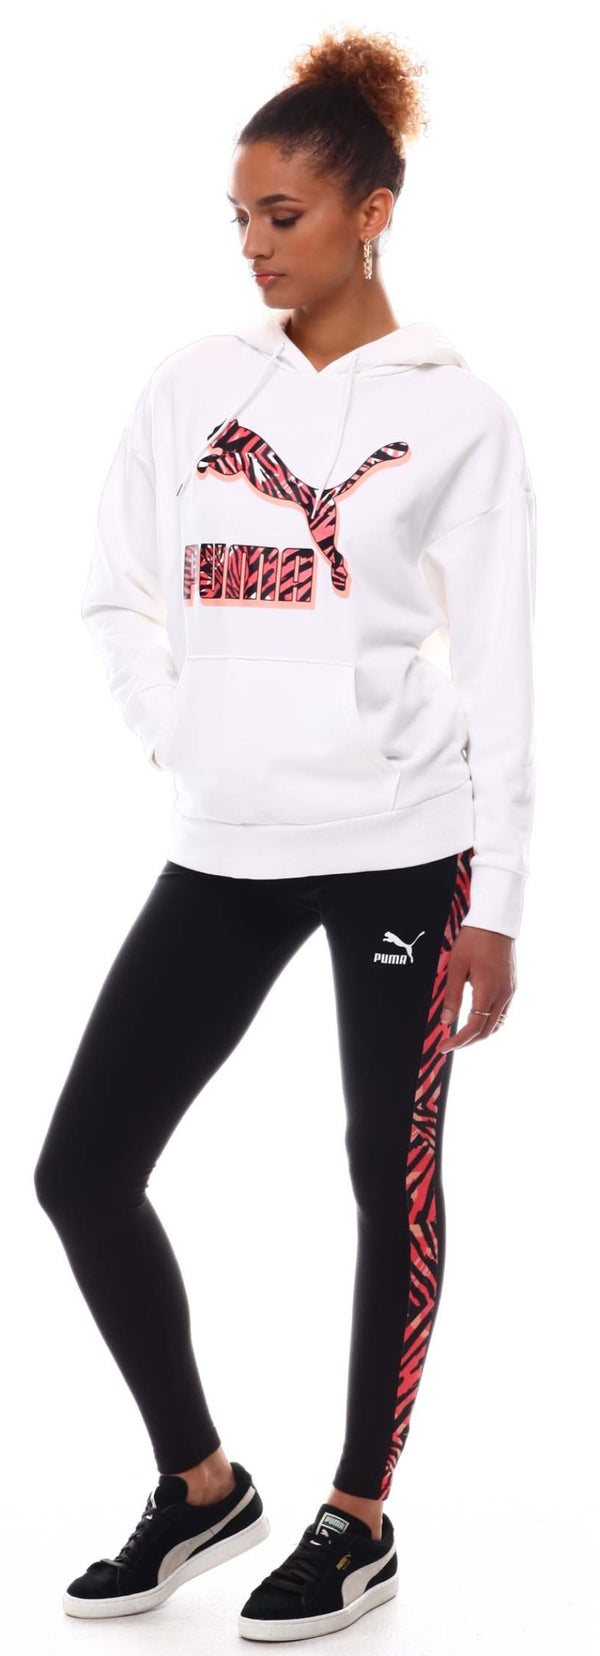 Puma Sweat Suit 599624 02 Set - Action Wear